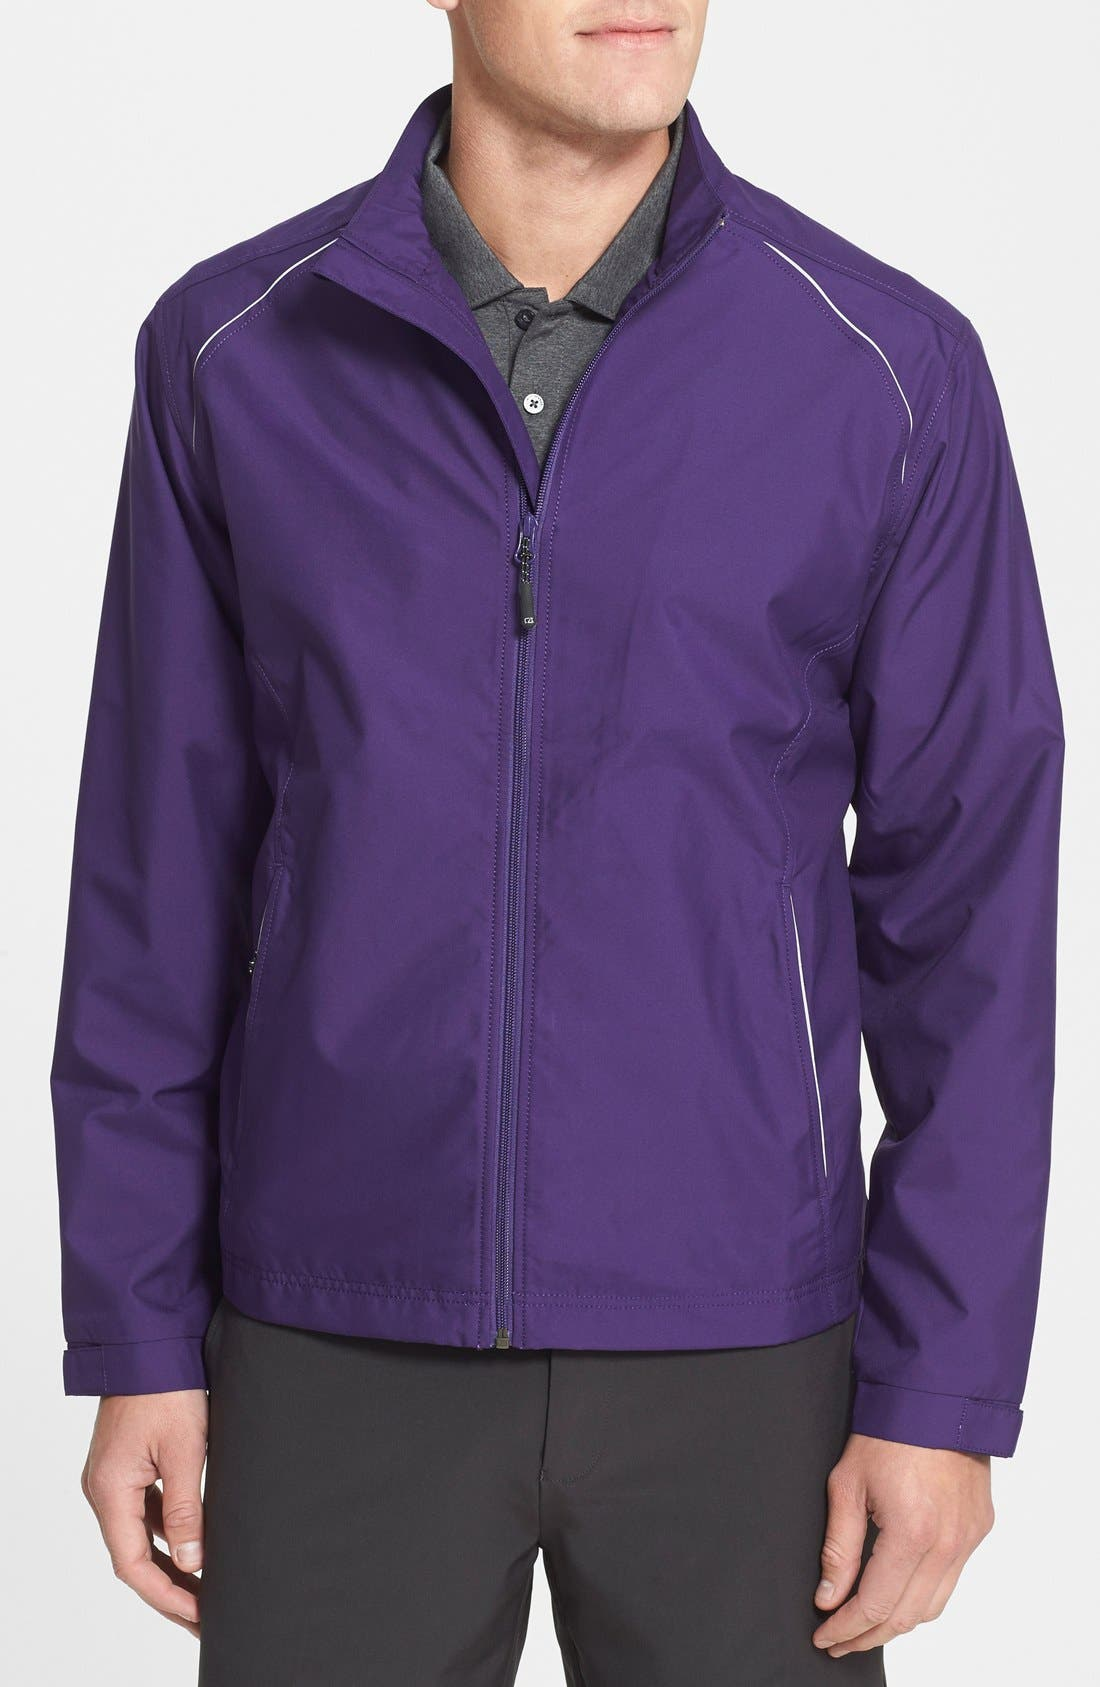 Main Image - Cutter & Buck WeatherTec Beacon Water Resistant Jacket